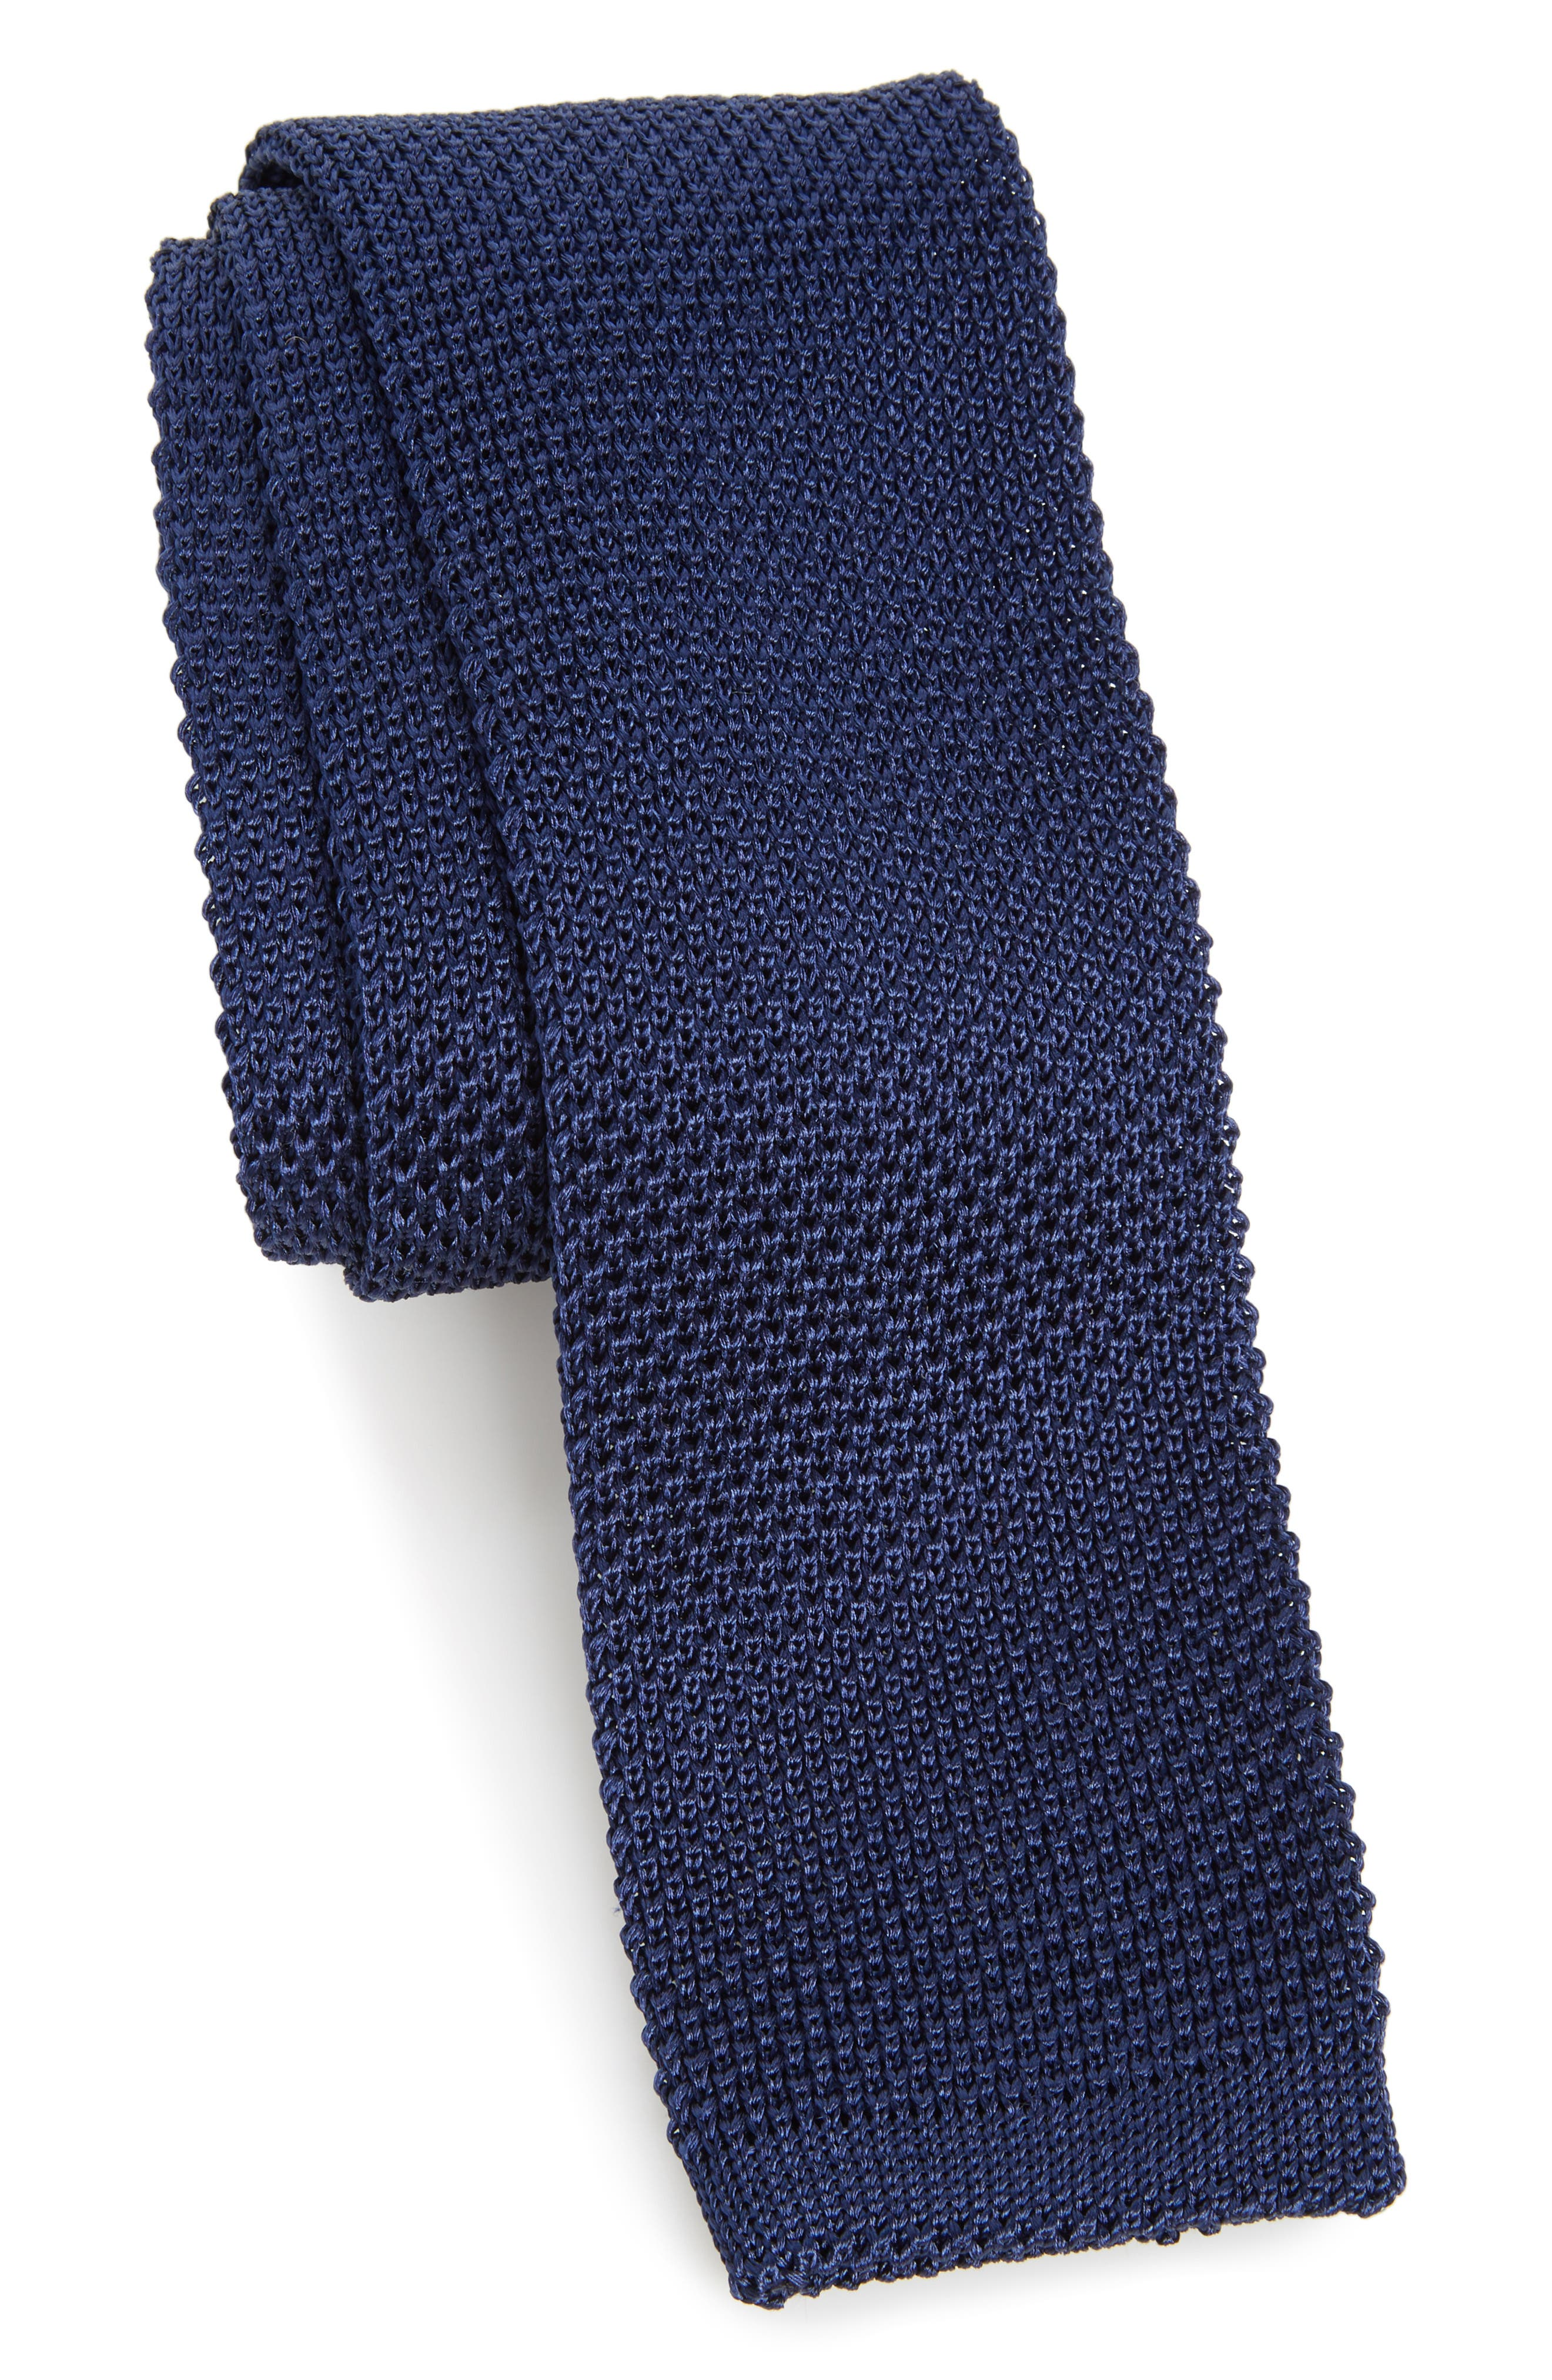 Main Image - Nordstrom Men's Shop Stuart Silk Knit Tie